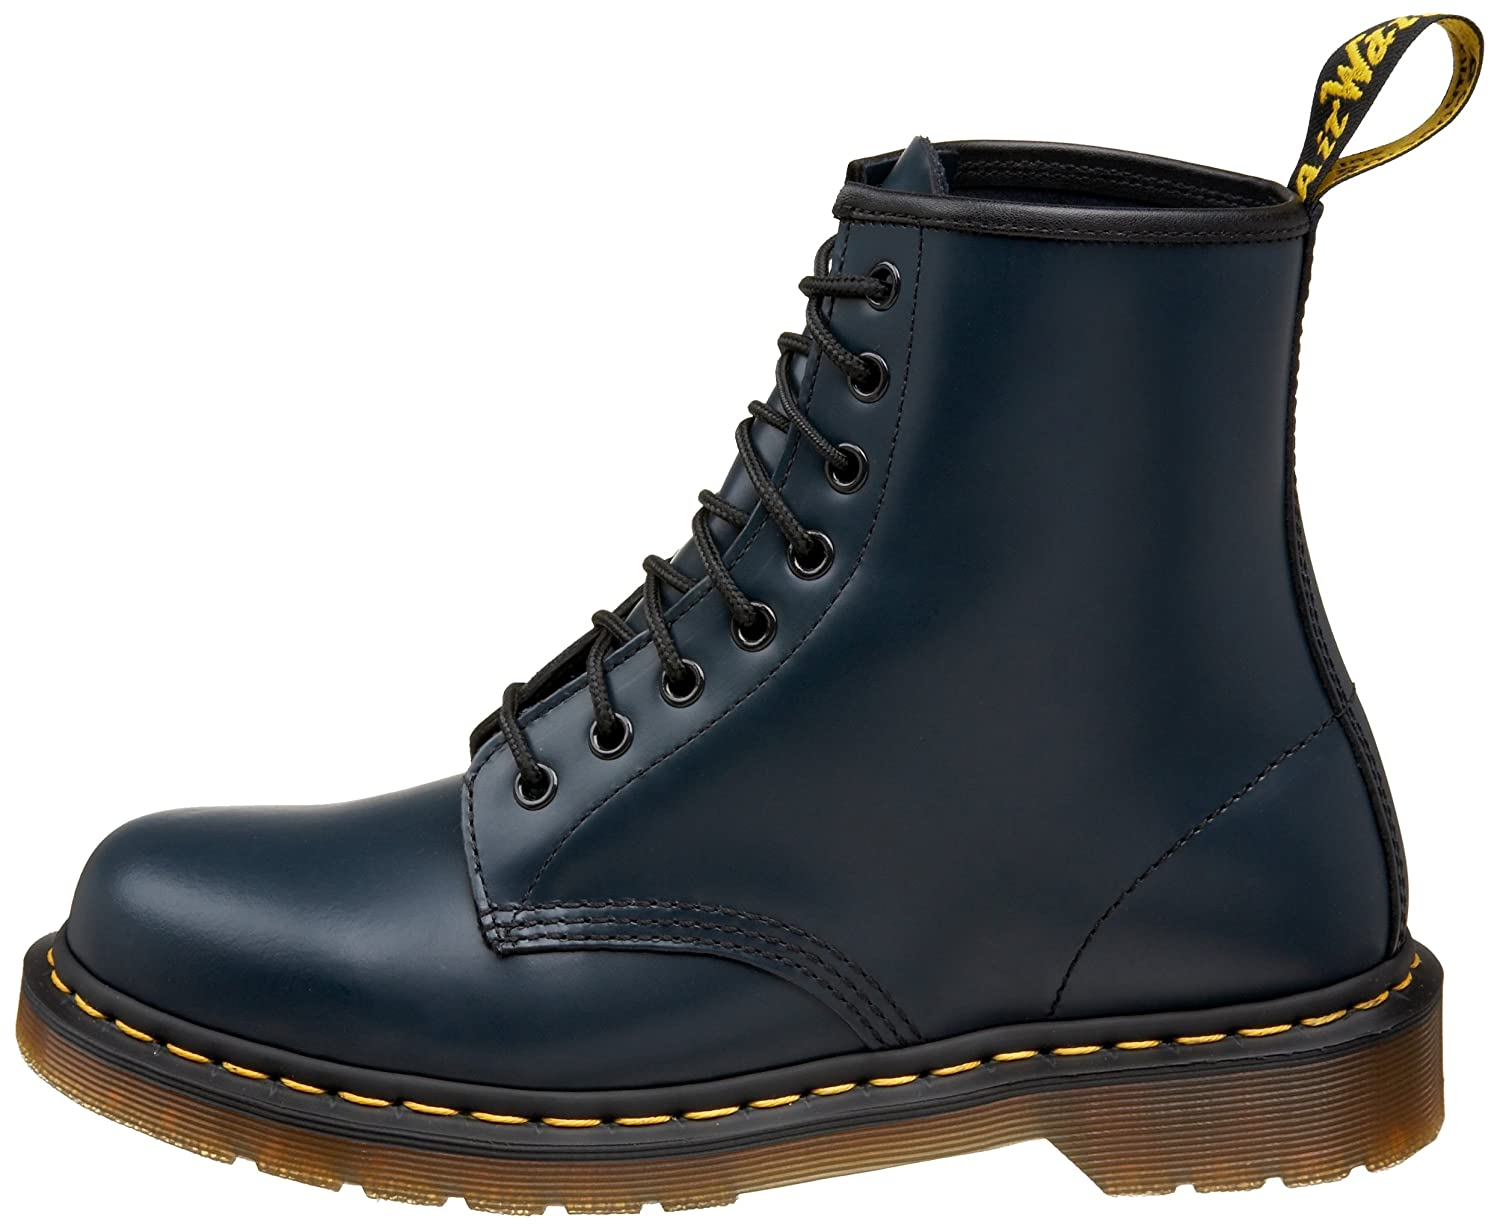 Dr. UK Martens 1460 Originals Eight-Eye Lace-Up Boot B000W80R4O 4 UK Dr. (US Women's 6 M)|Navy fe6528